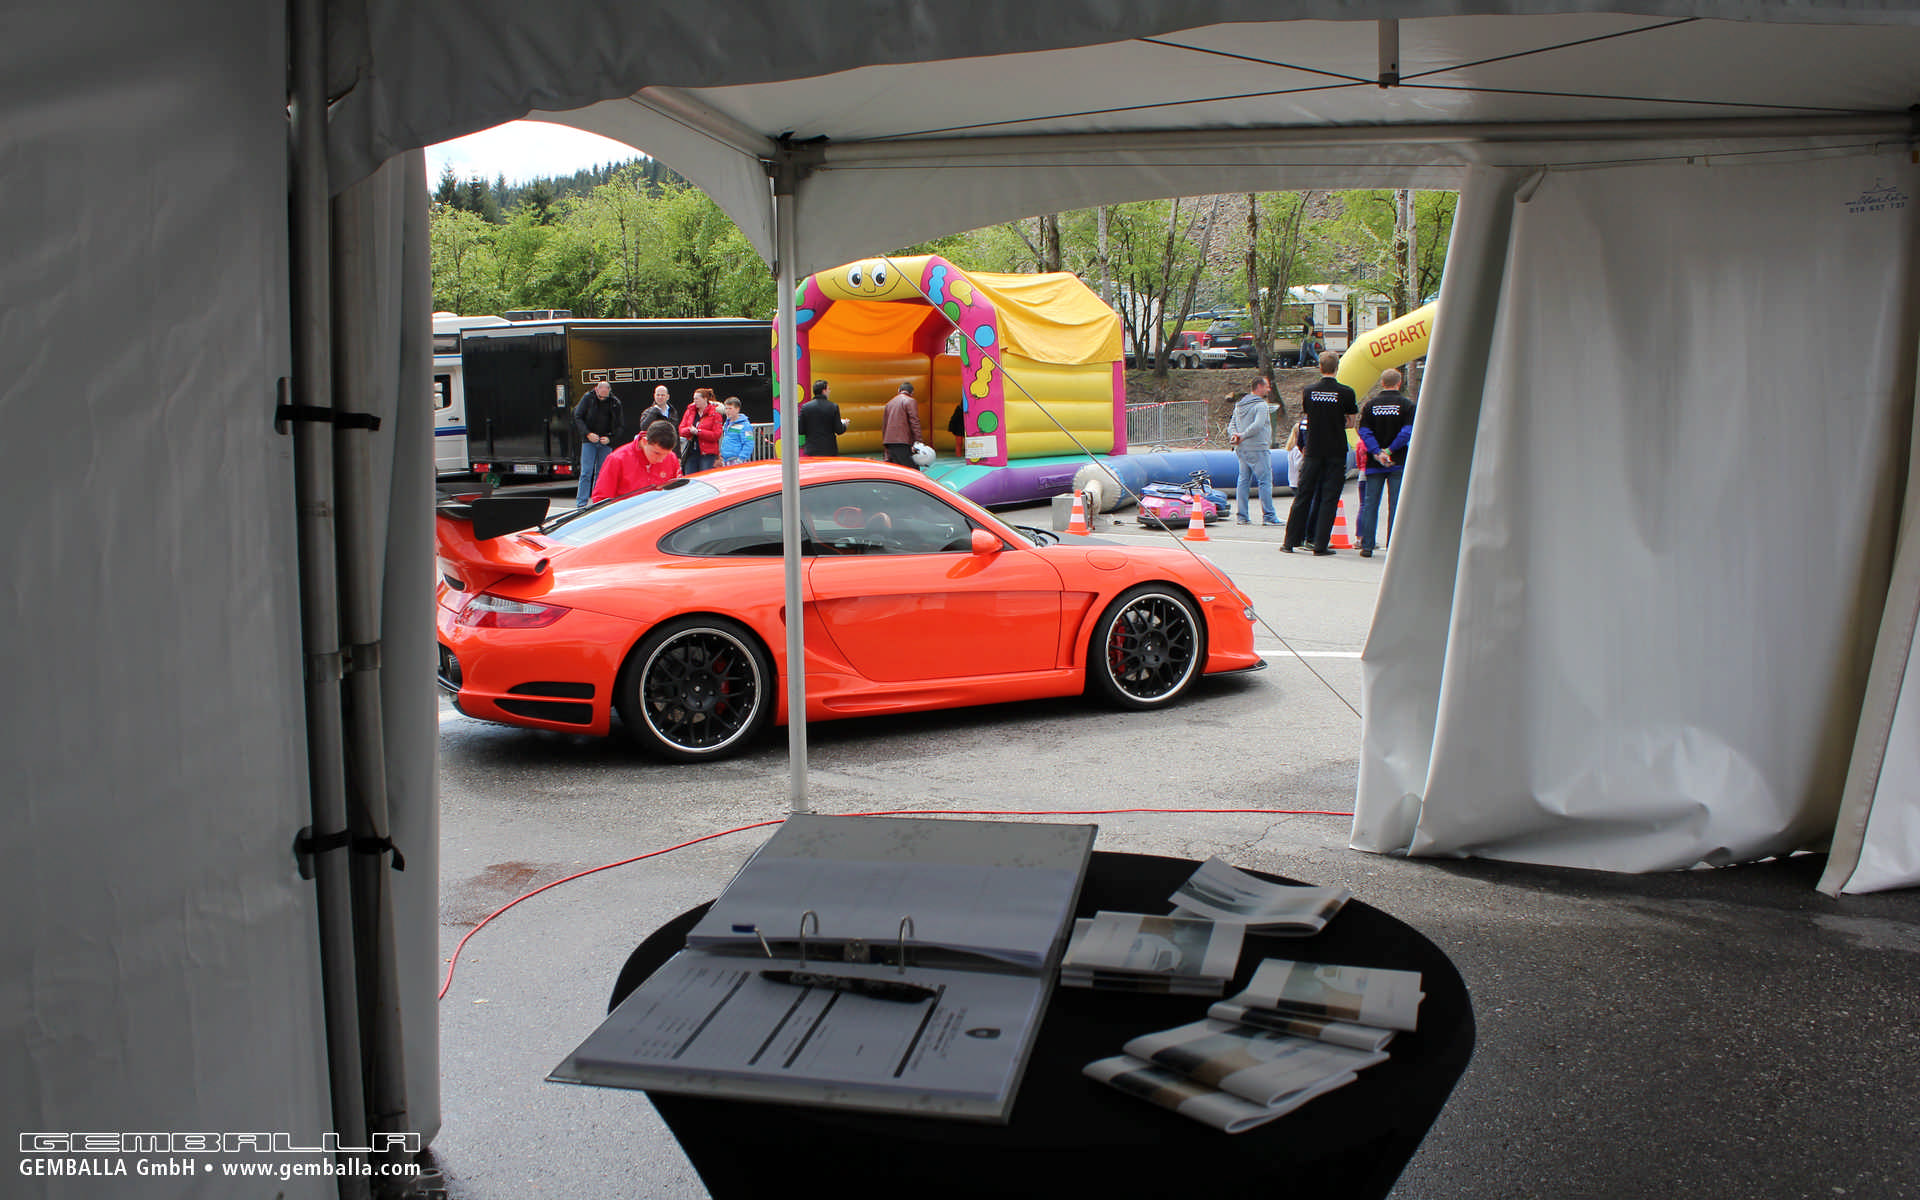 gemballa_gmbh_event_spa_2013_003